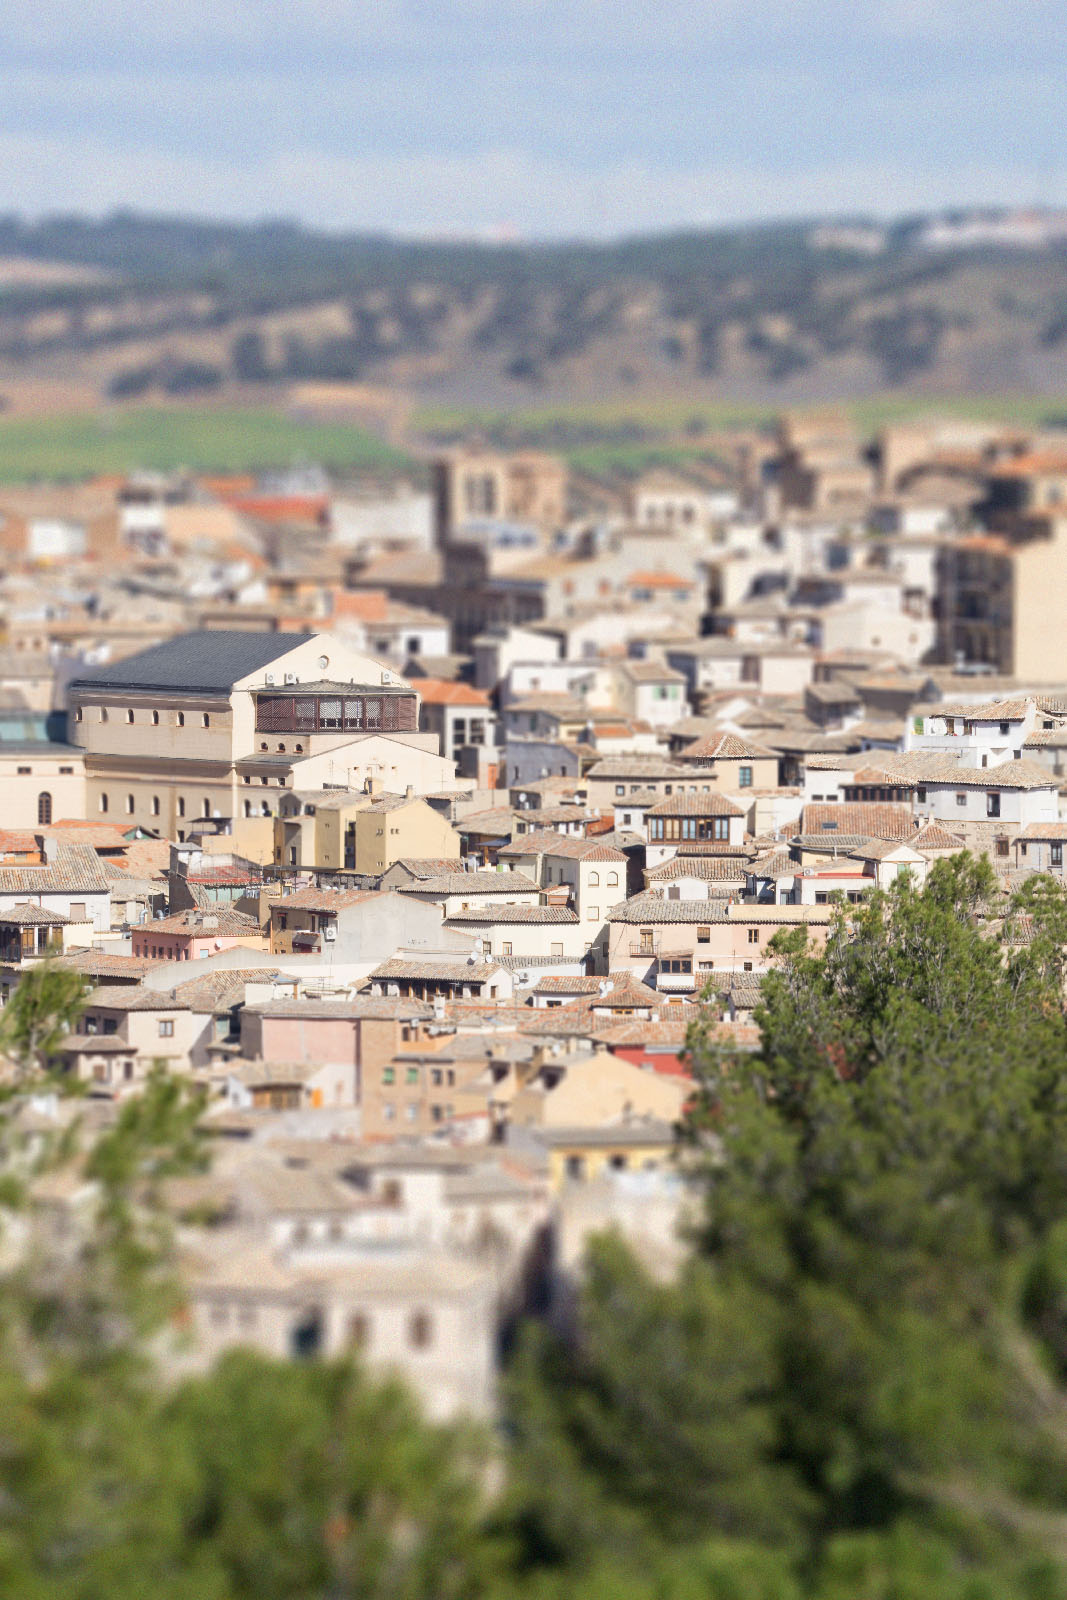 efecto-tilt-shift-toledo